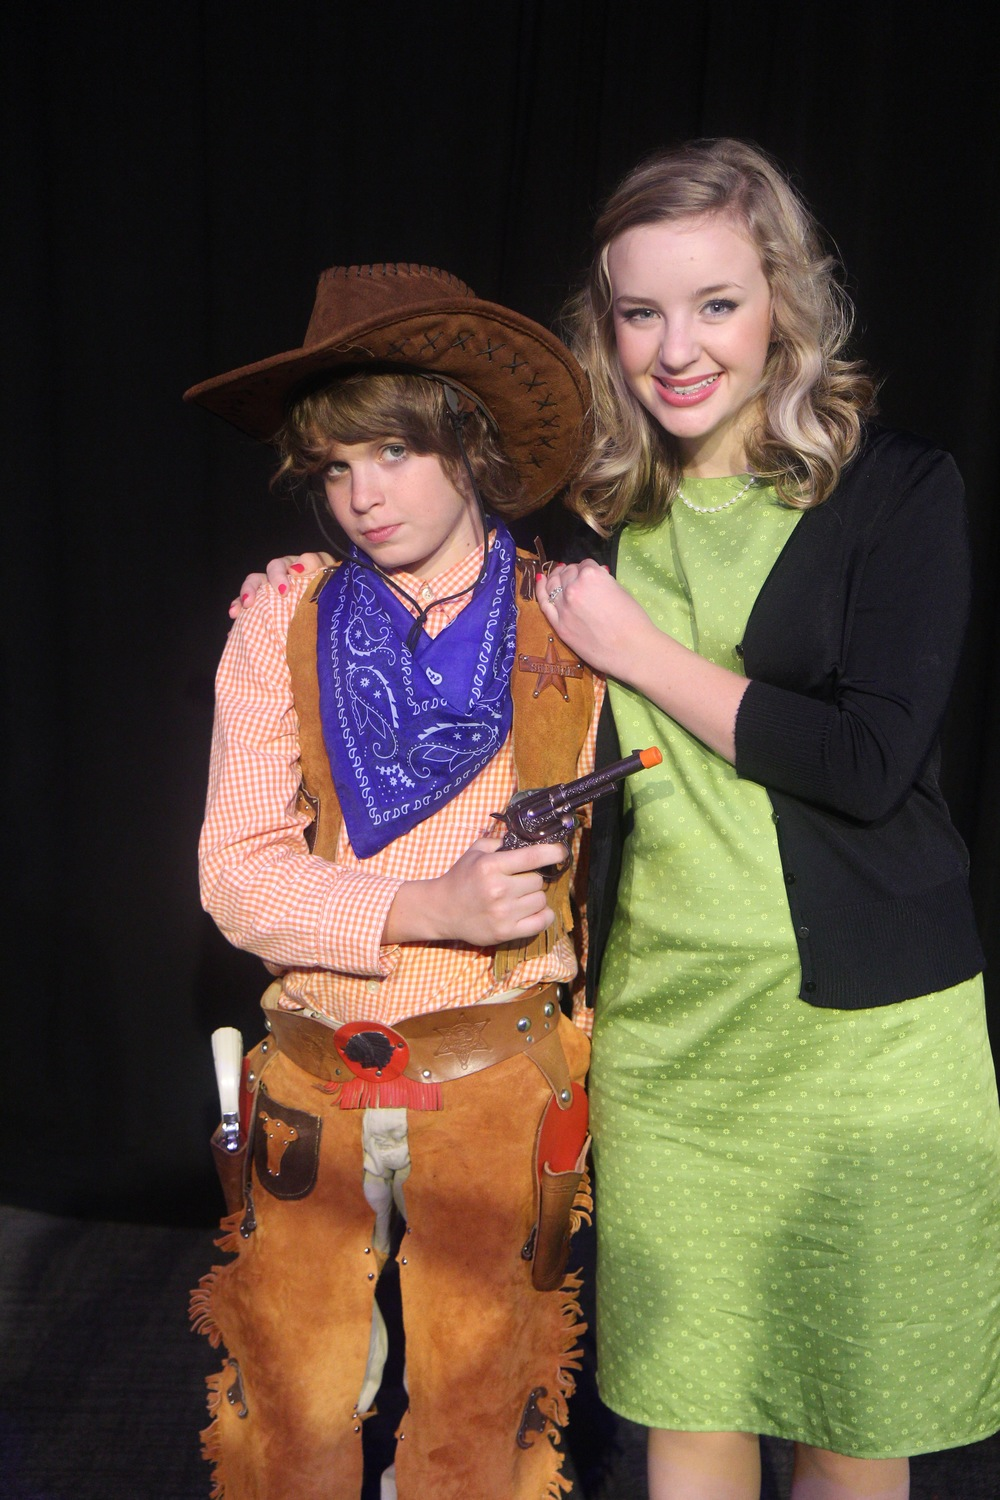 Mike Teavee (Finn Pope) and Mrs. Teavee (Kathryn Merrell)